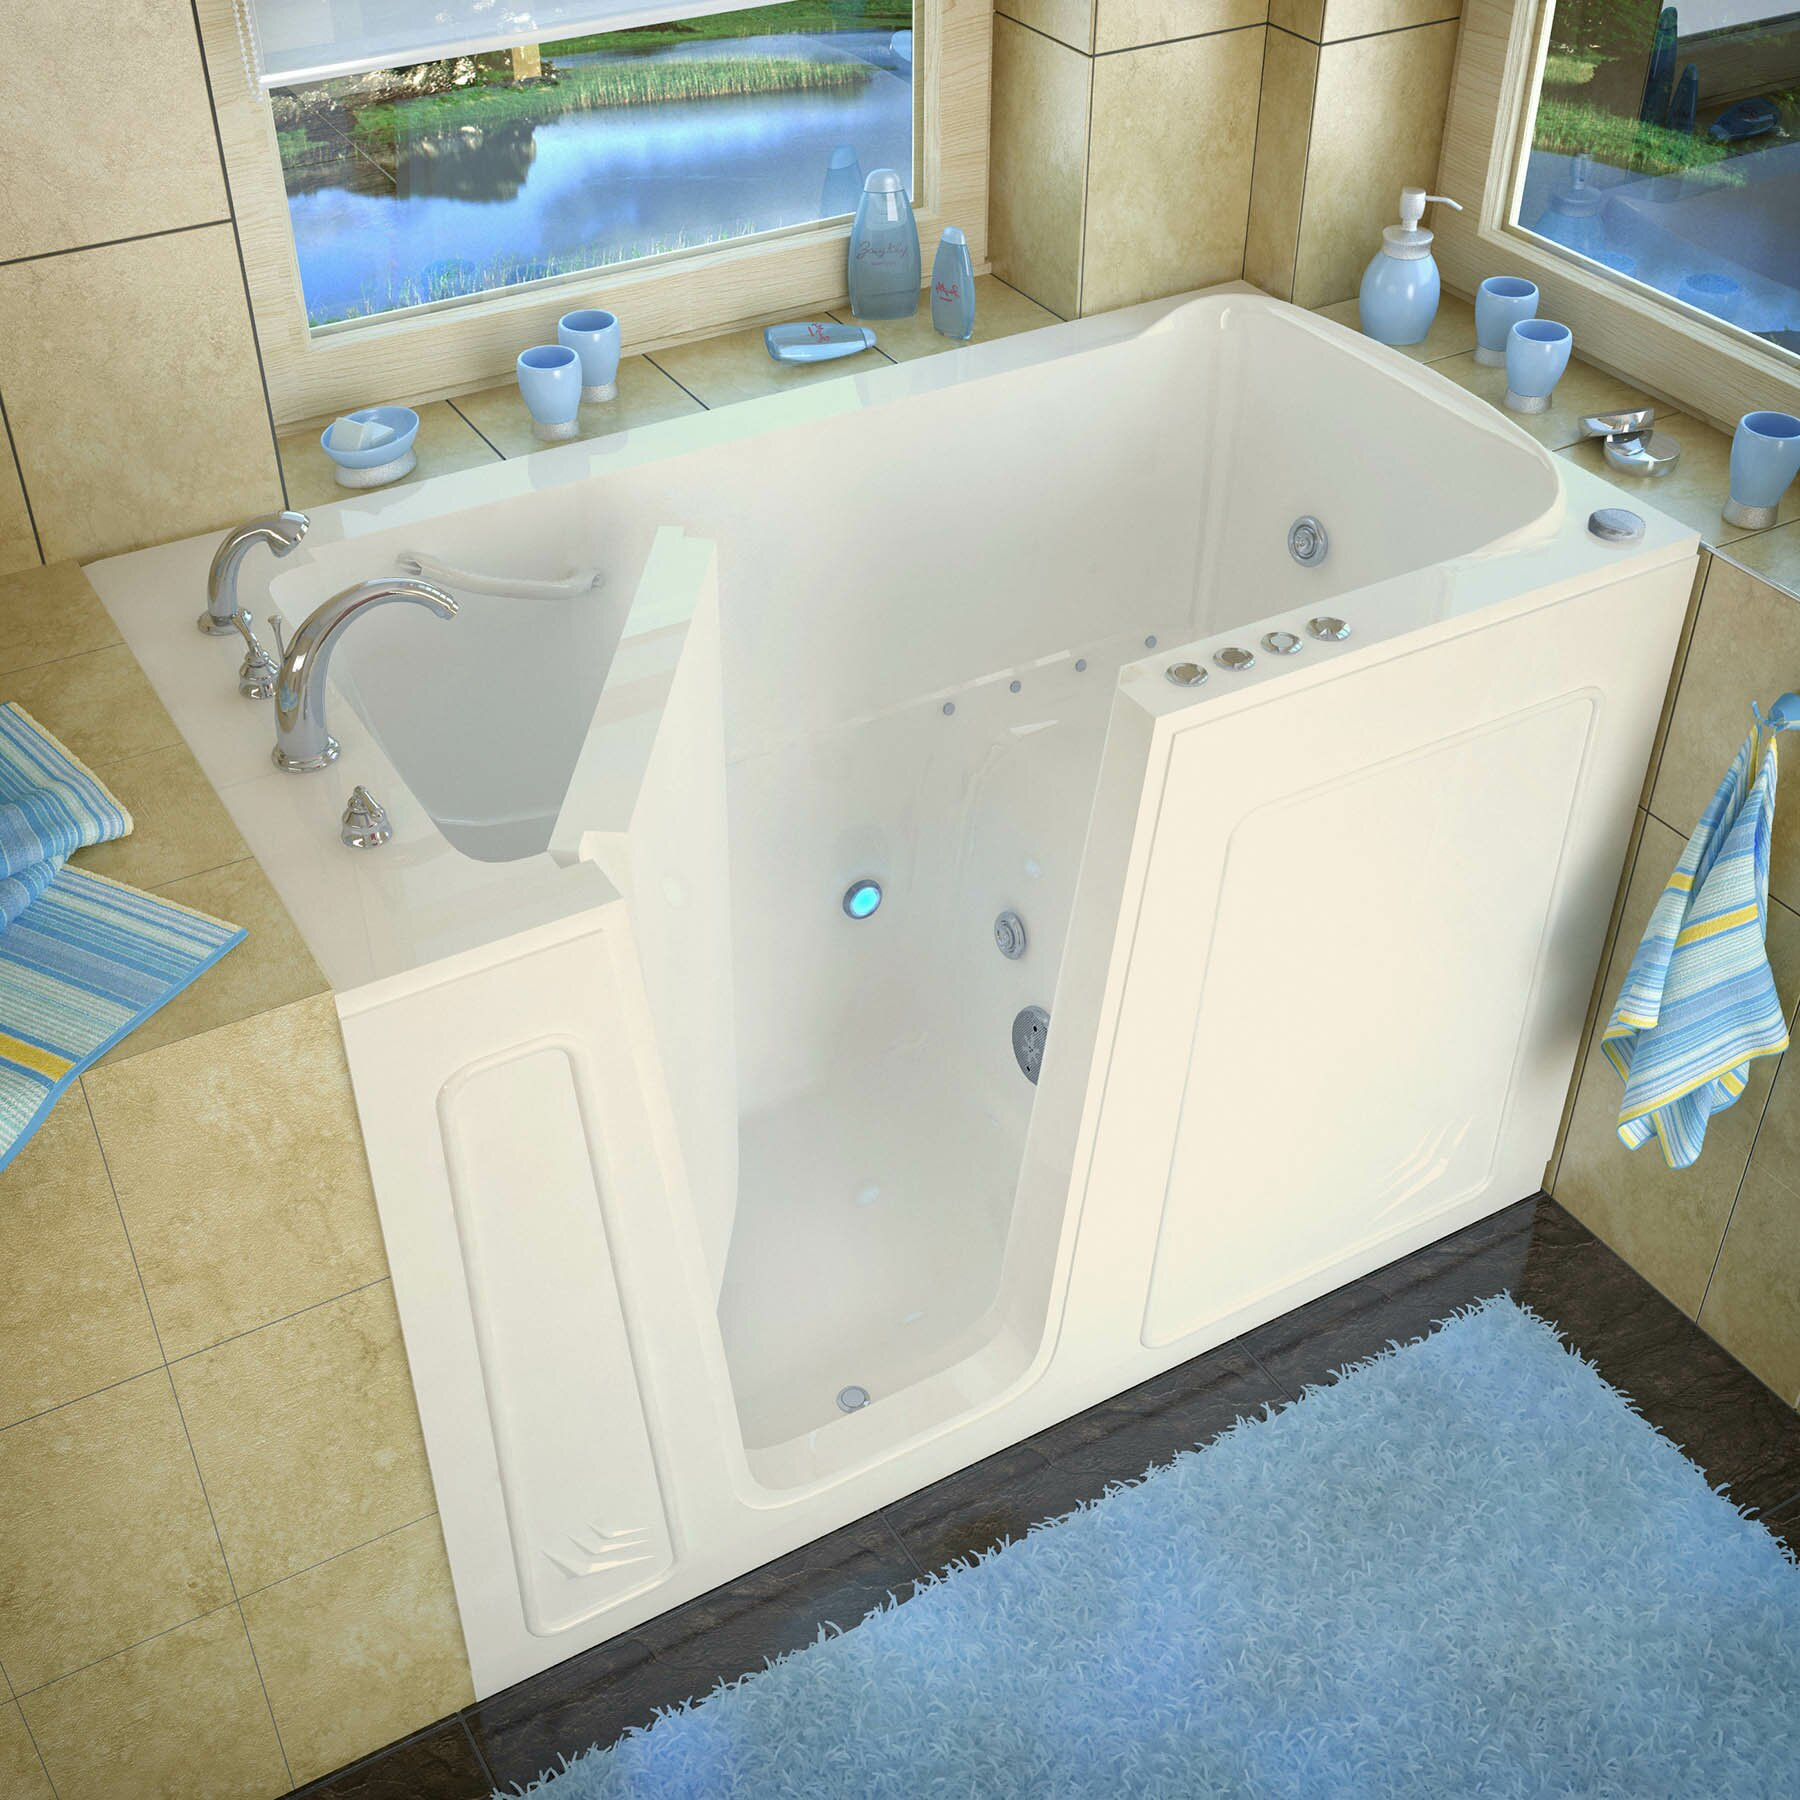 Therapeutic Tubs Aspen 60 X 32 Whirlpool Air Jetted Bathtub